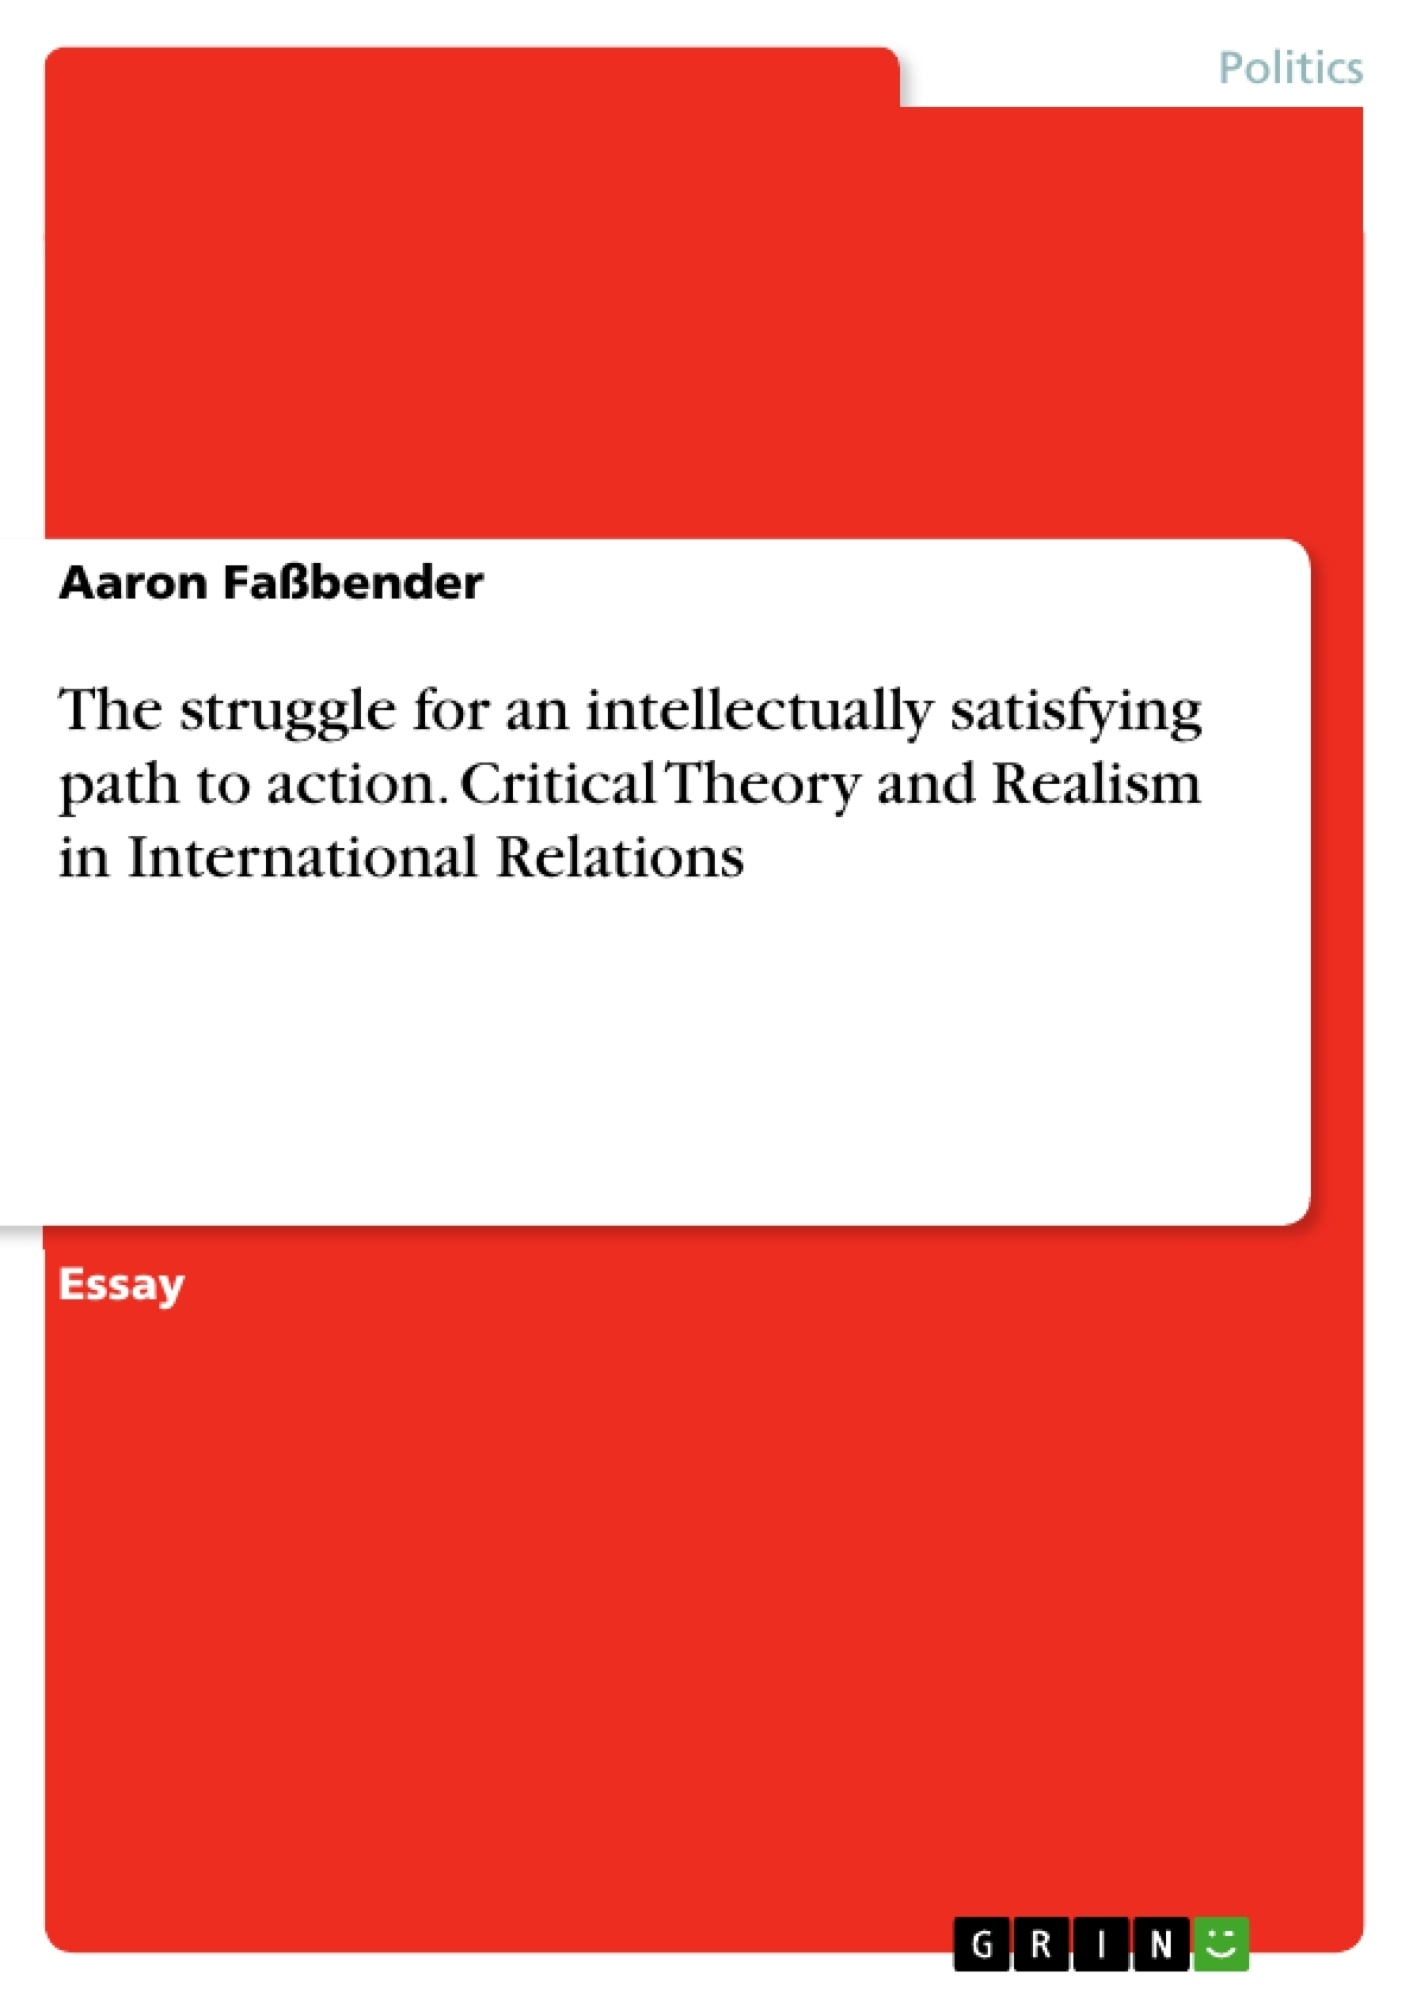 Title: The struggle for an intellectually satisfying path to action. Critical Theory and Realism in International Relations